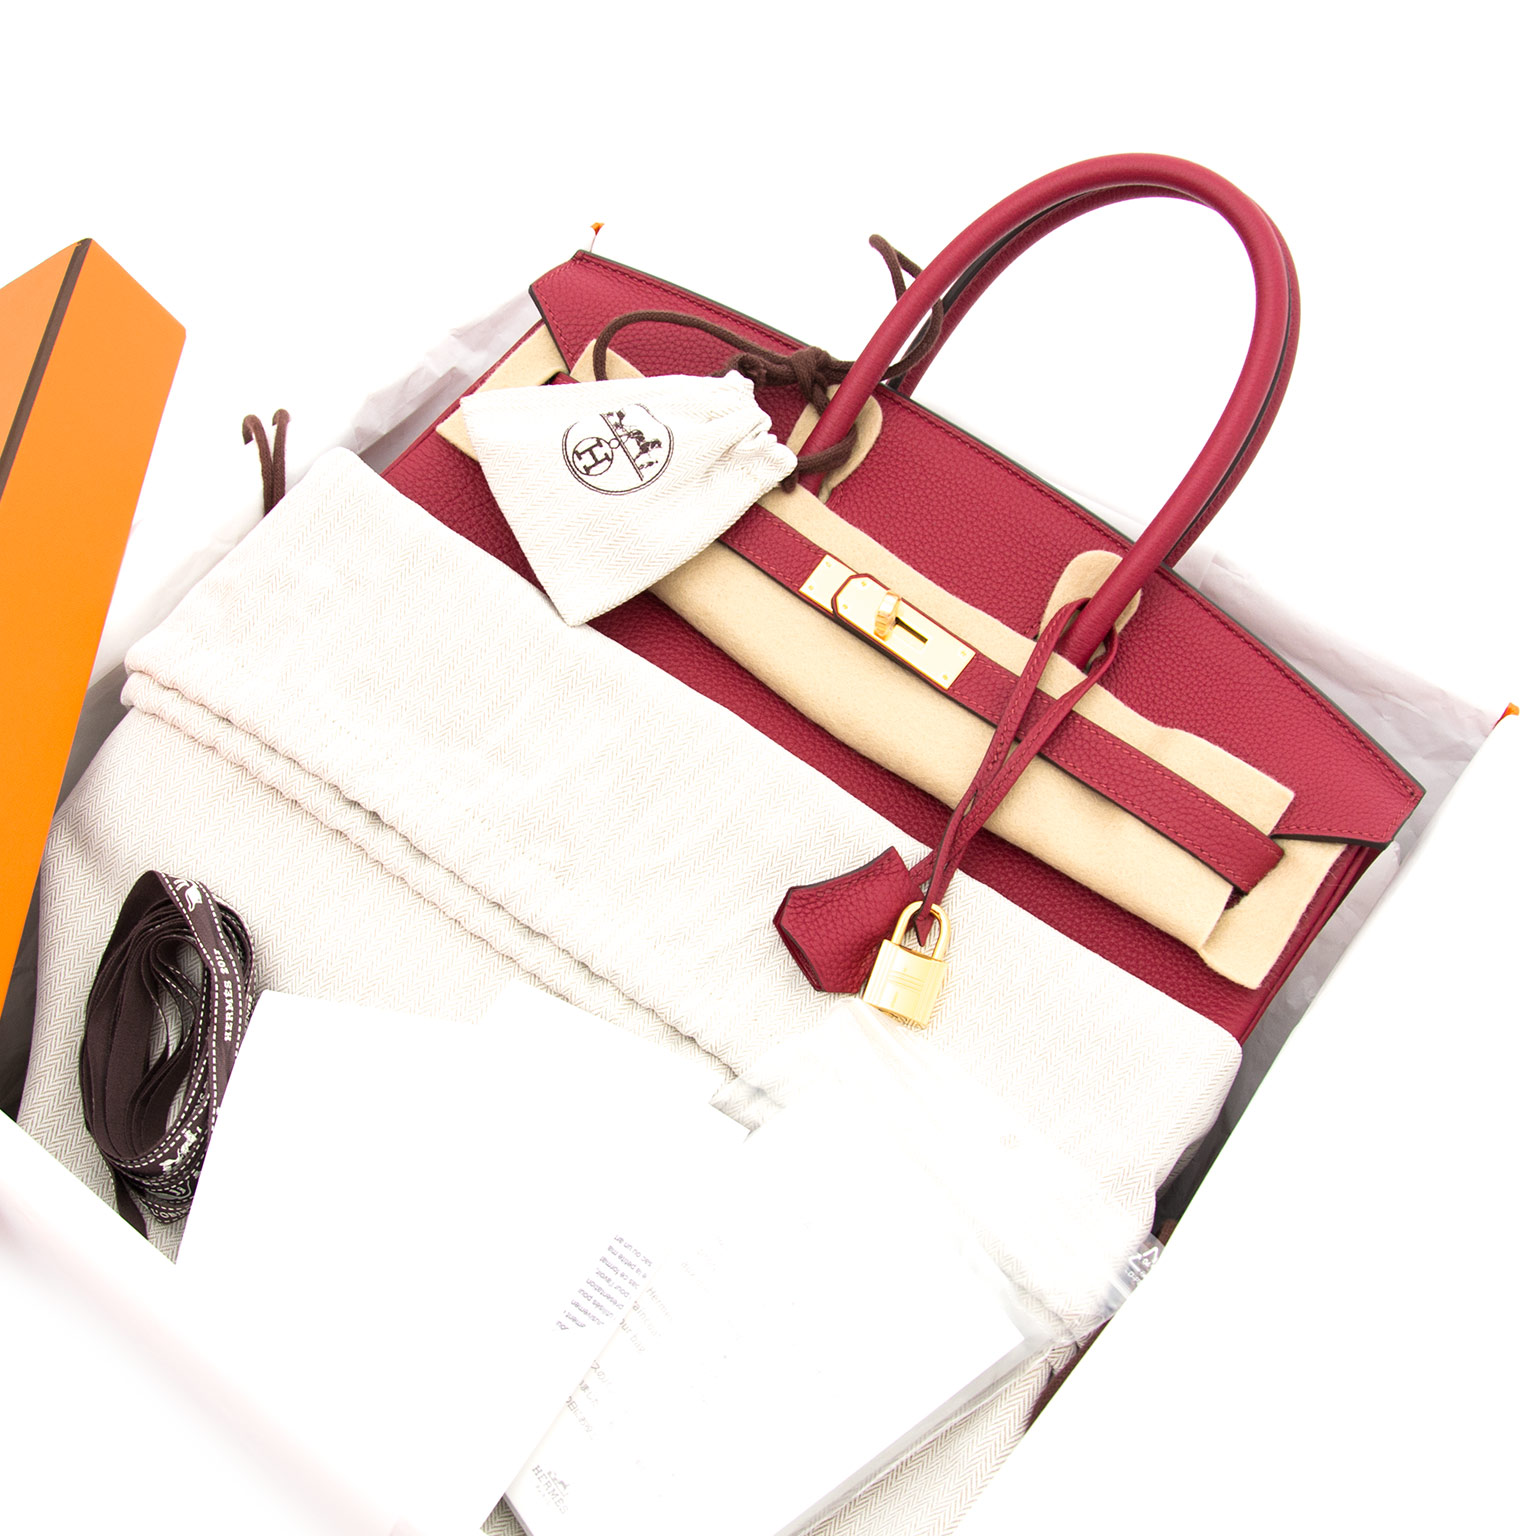 Brand new hermes birkin rouge grenat 35 togo now online at labellov.com for the best price